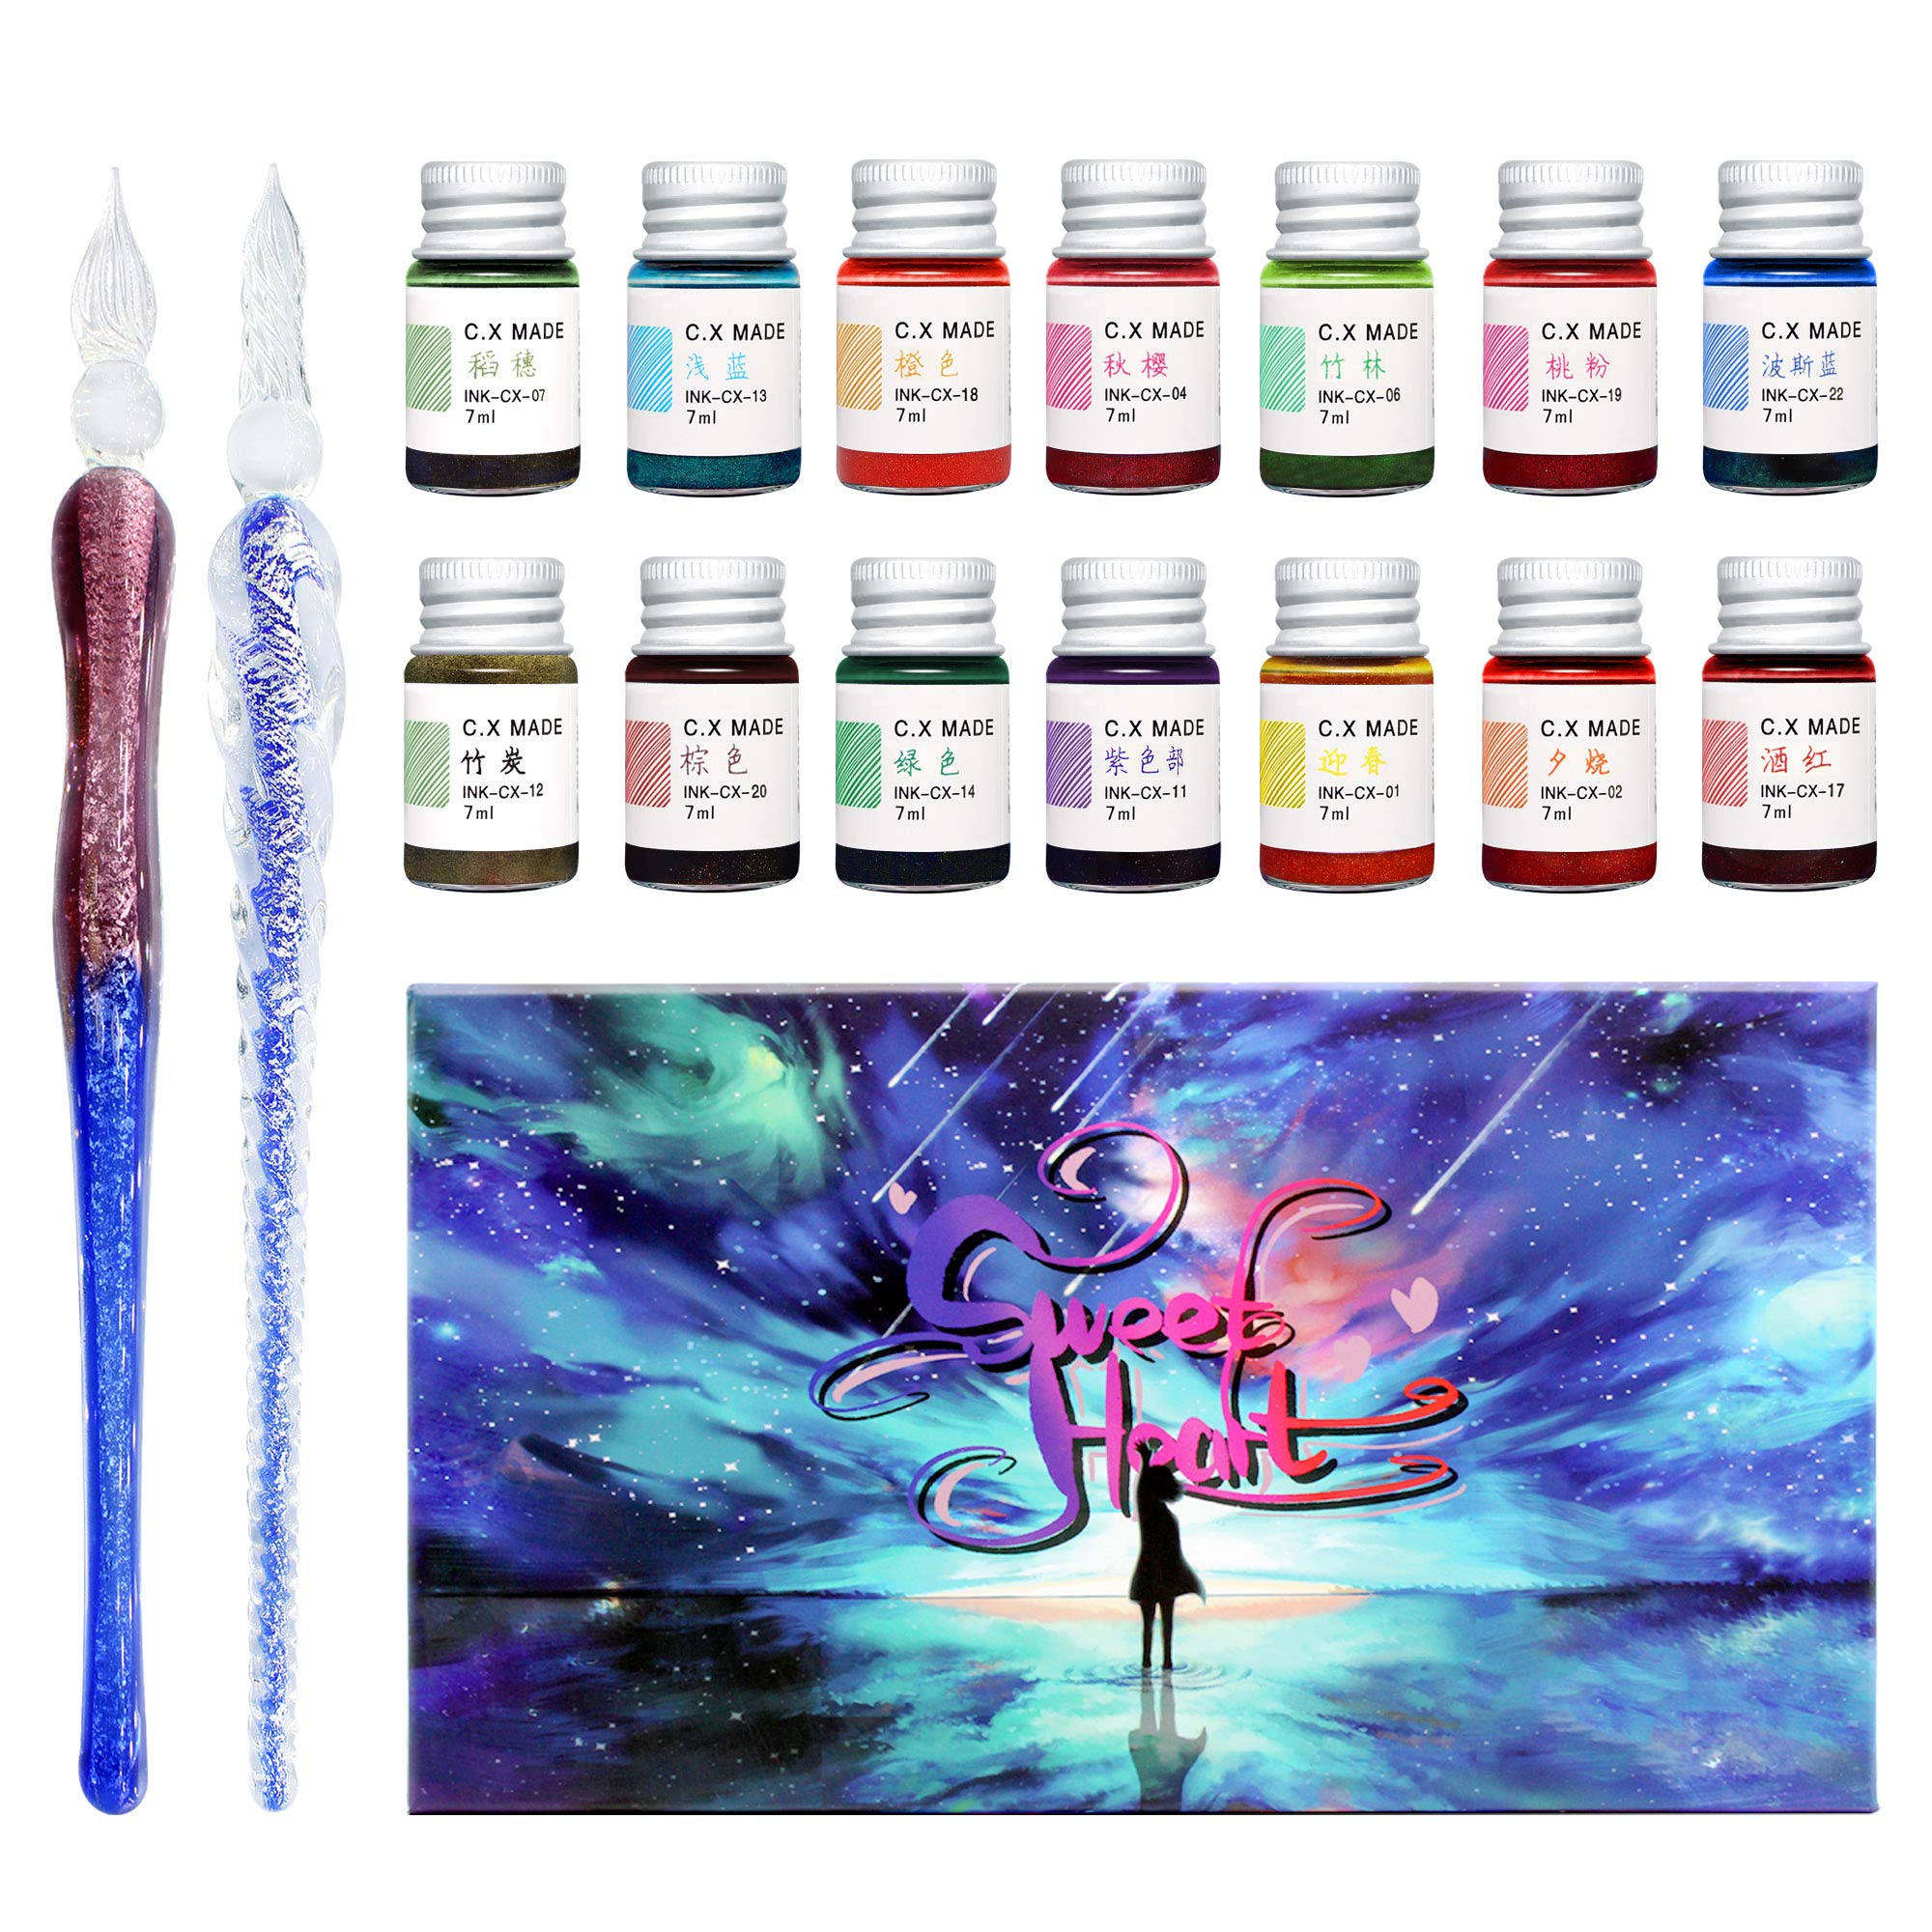 Glass Dipped Pen Ink Set Crystal Glass Pen with 14 Colorful Inks